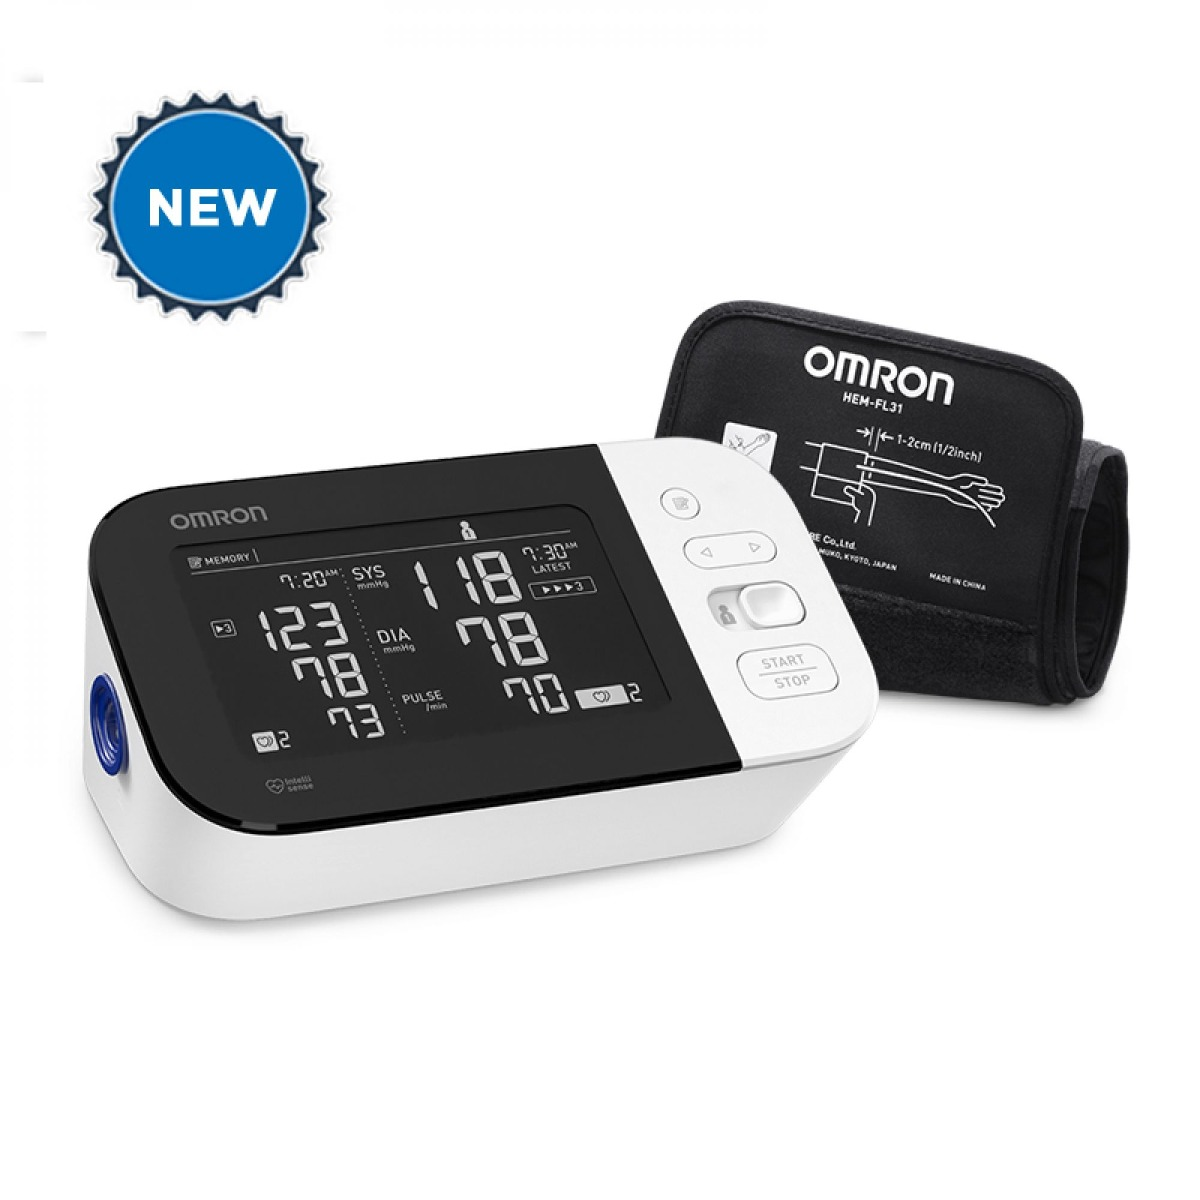 New wireless Omron 10 series arm blood pressure monitor machine with digital display and cuff